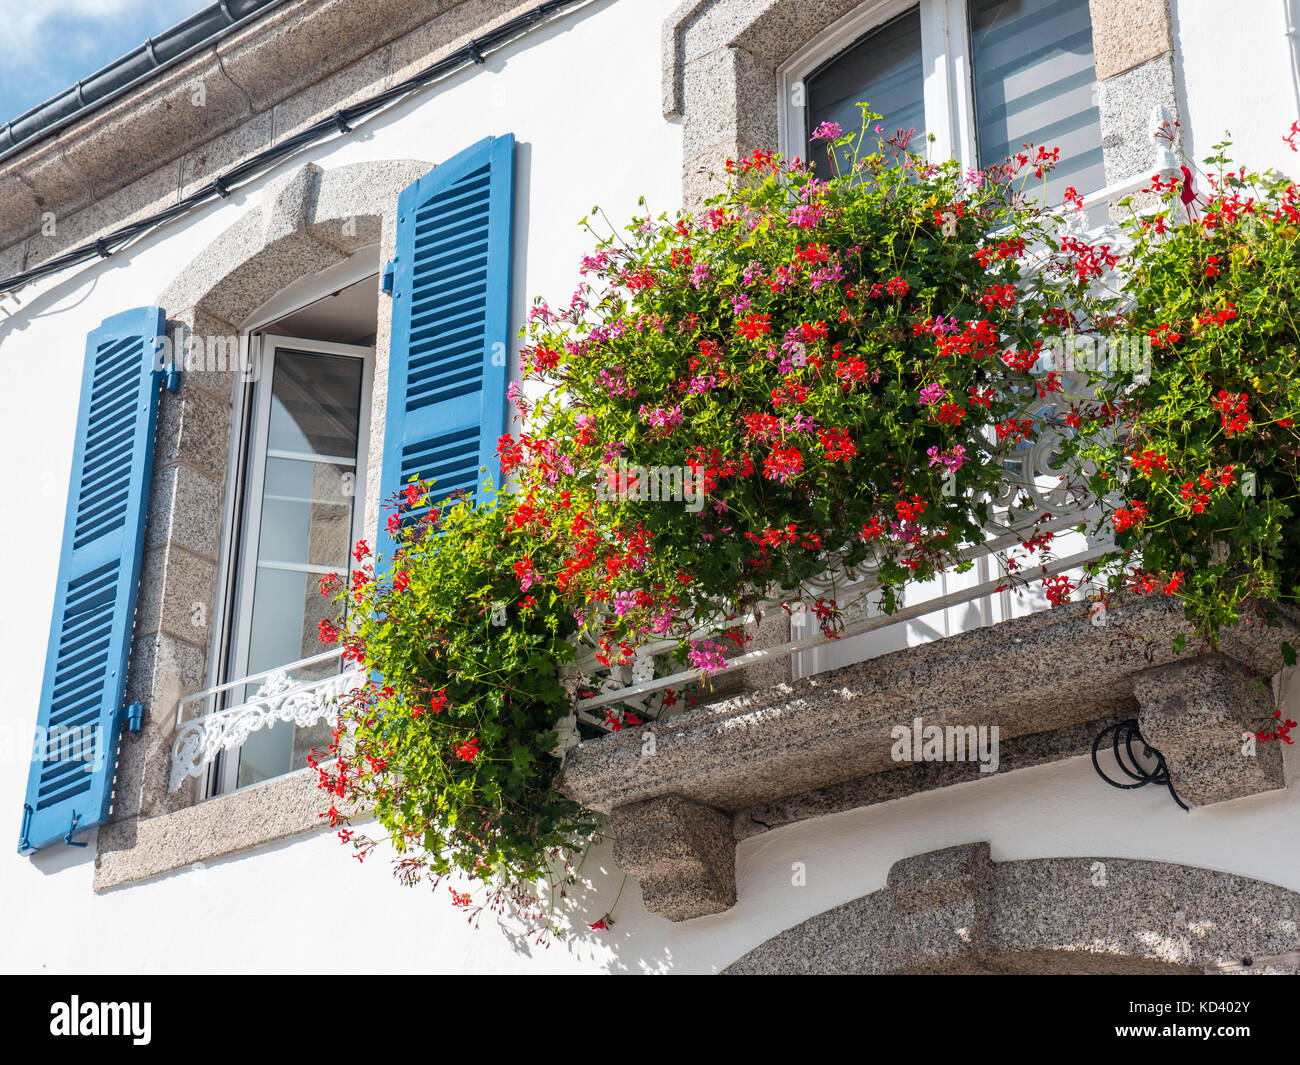 French Gite B&B with typical blue shuttered window and pelargonium floral display window box - Stock Image